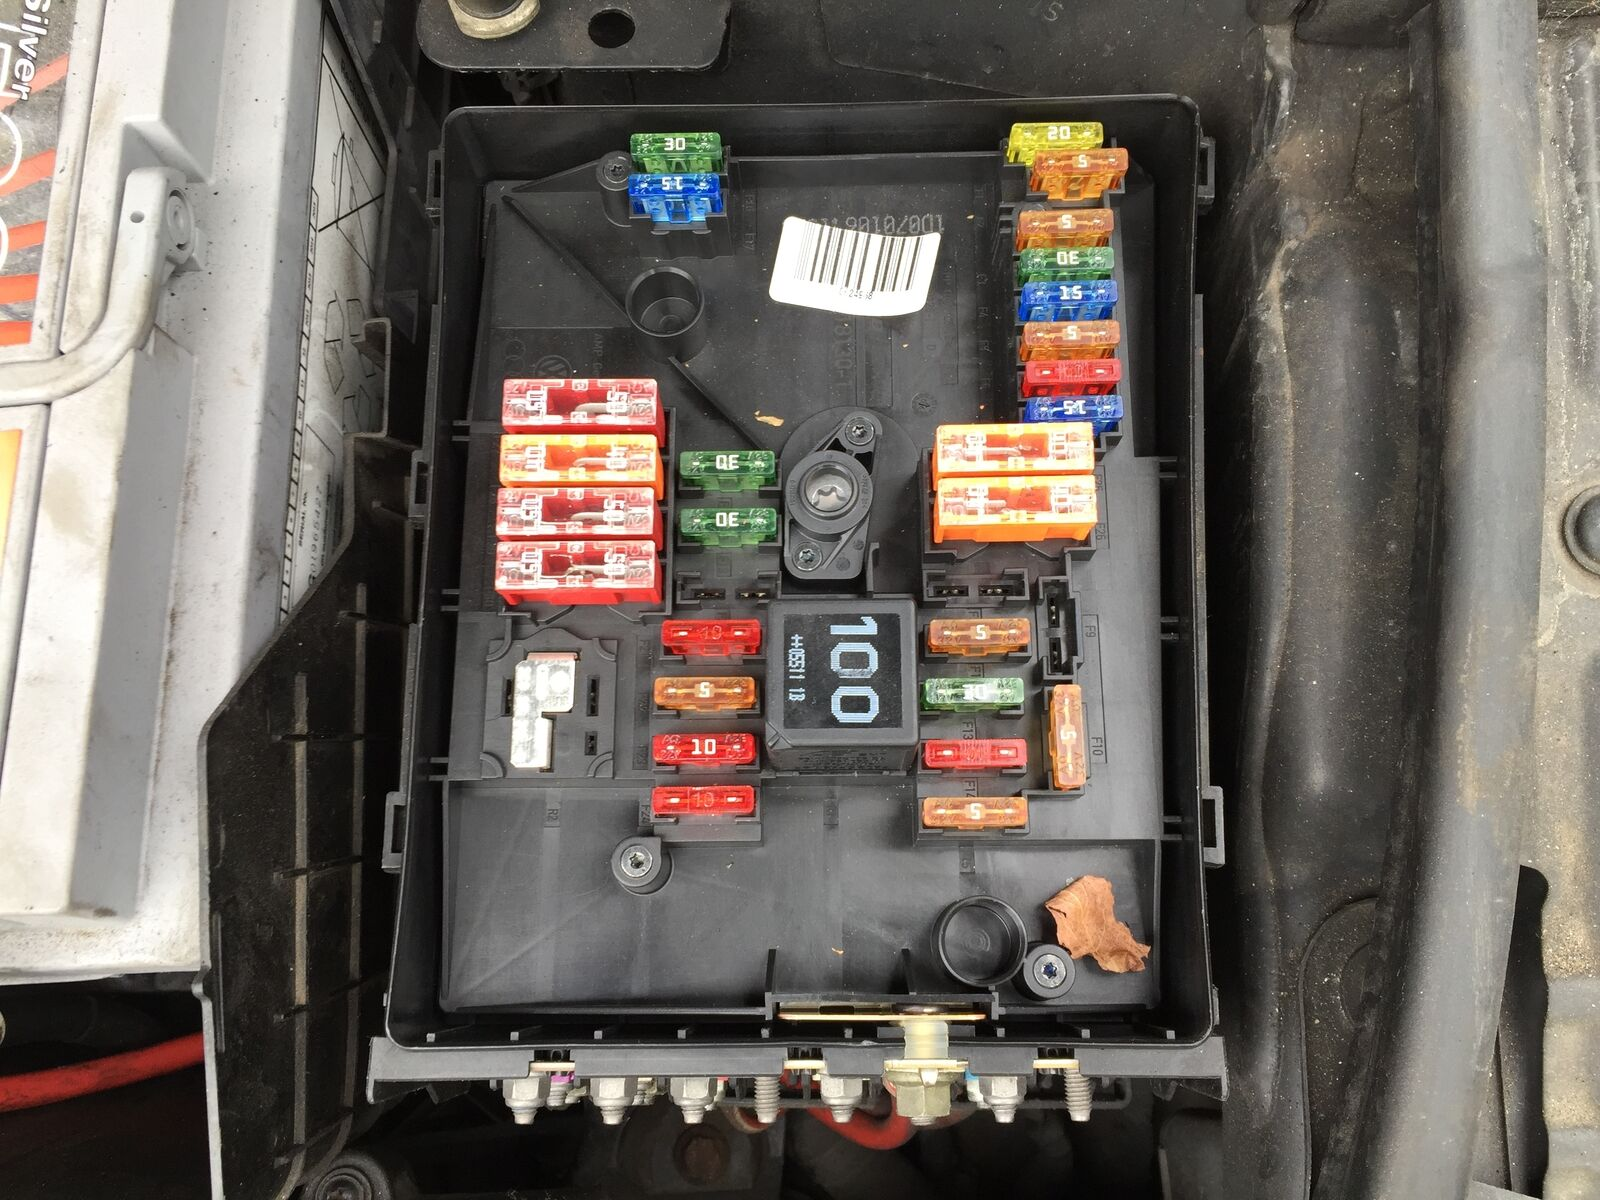 2008 audi a3 fuse box wiring diagram will be a thing u2022 rh  exploreandmore co uk 2006 Audi A4 Fuse Box Diagram 2004 Audi A4 Fuse Box  Diagram